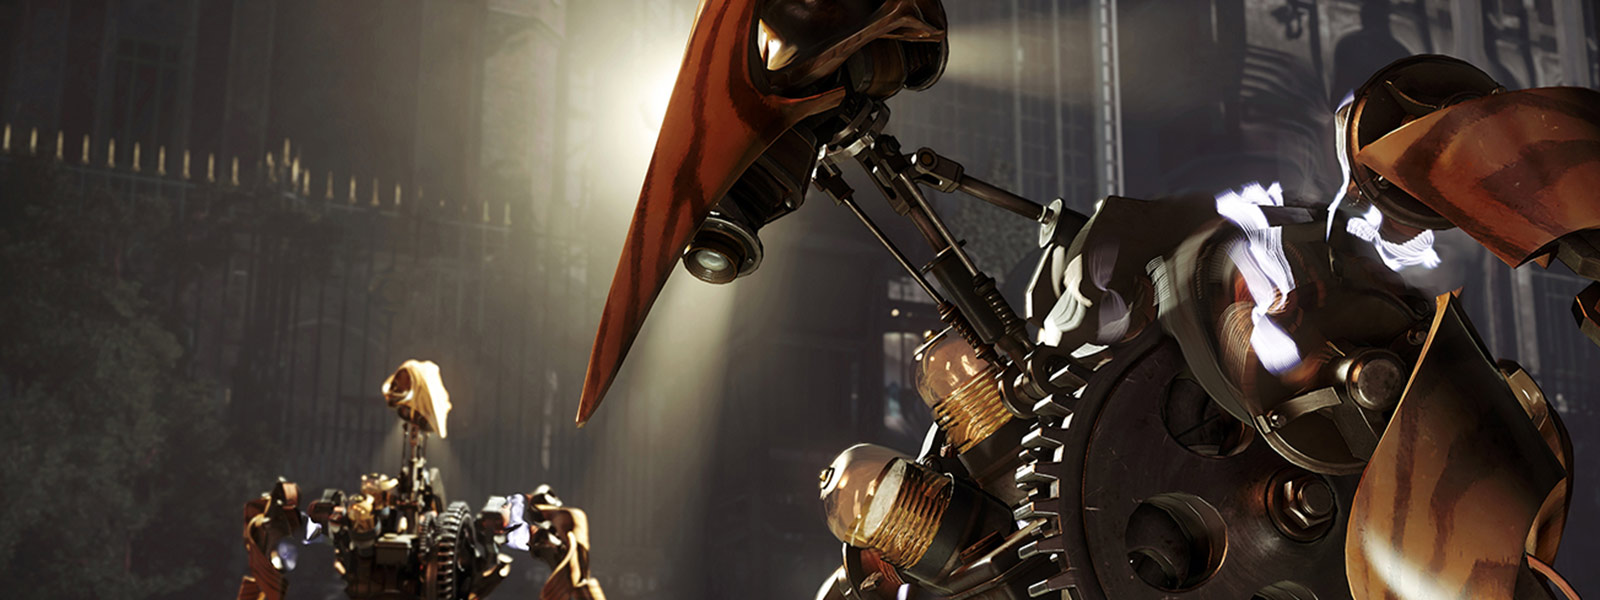 Robot de Dishonored 2 par Void engine